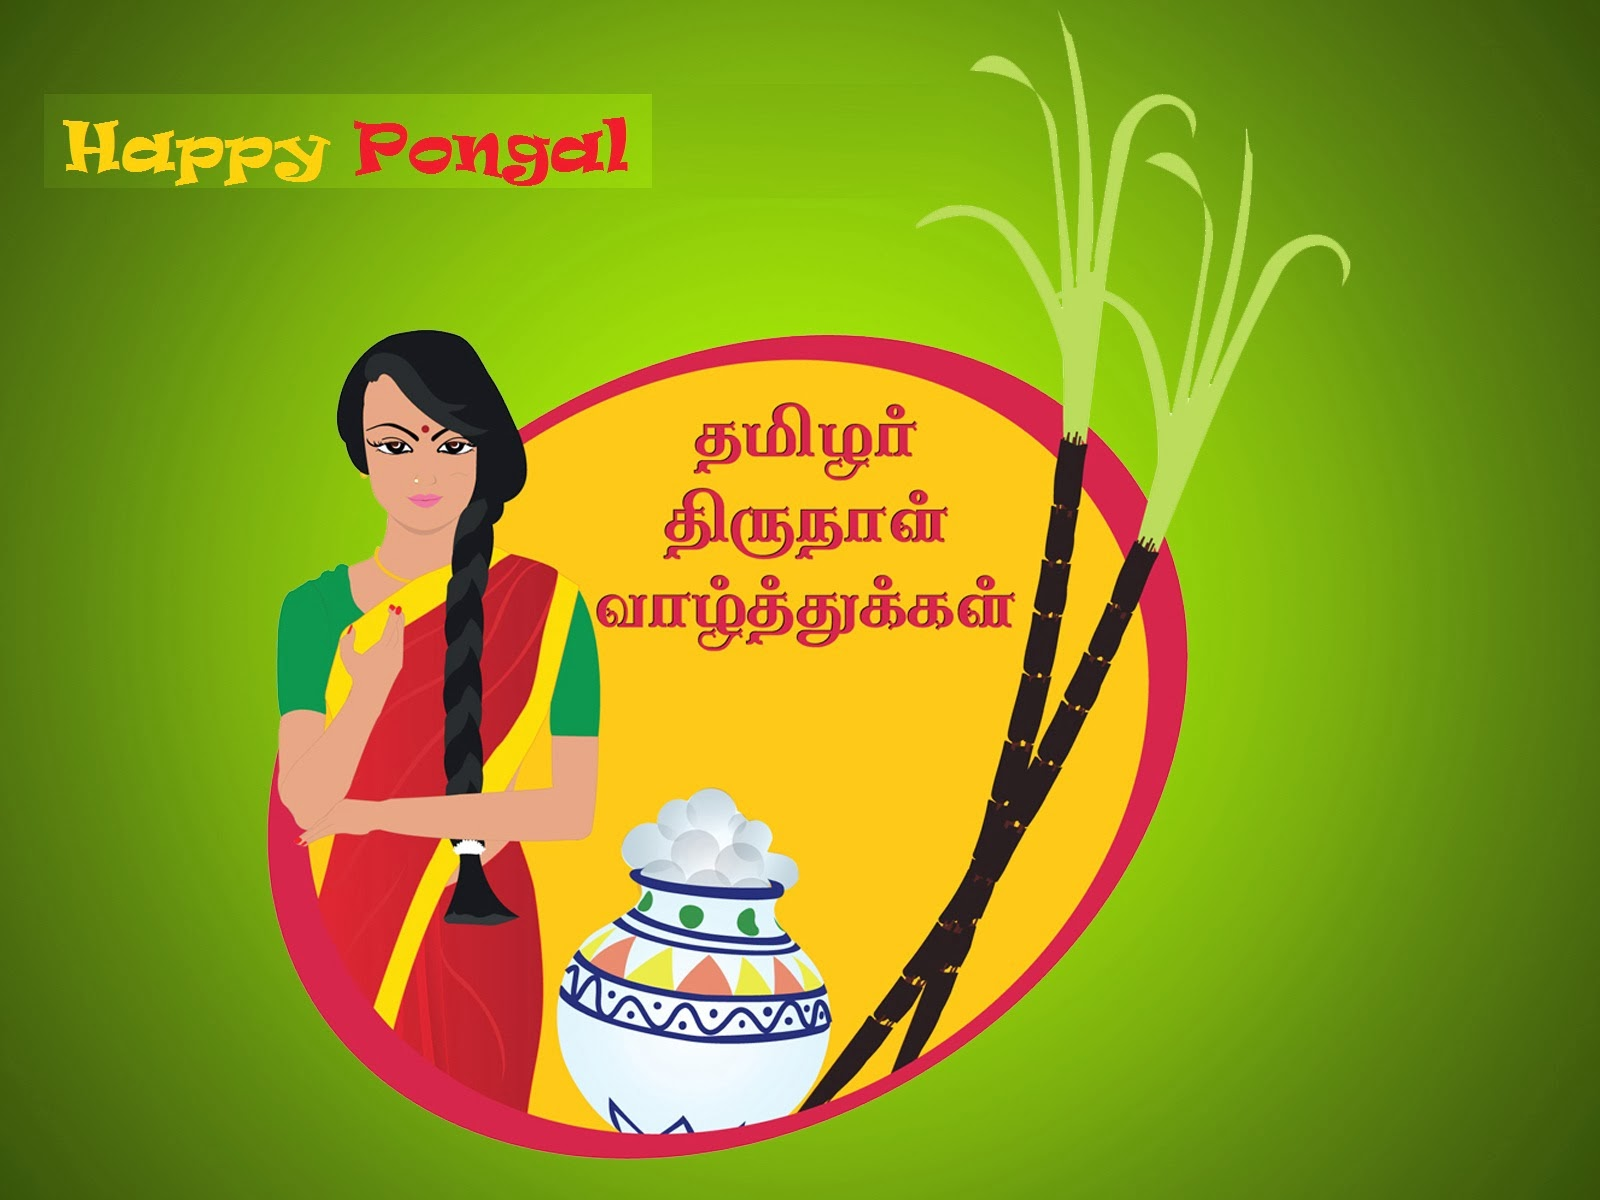 Happy Pongal 2017 Sms Text Message Wishes Quotes in English Tamil Festival